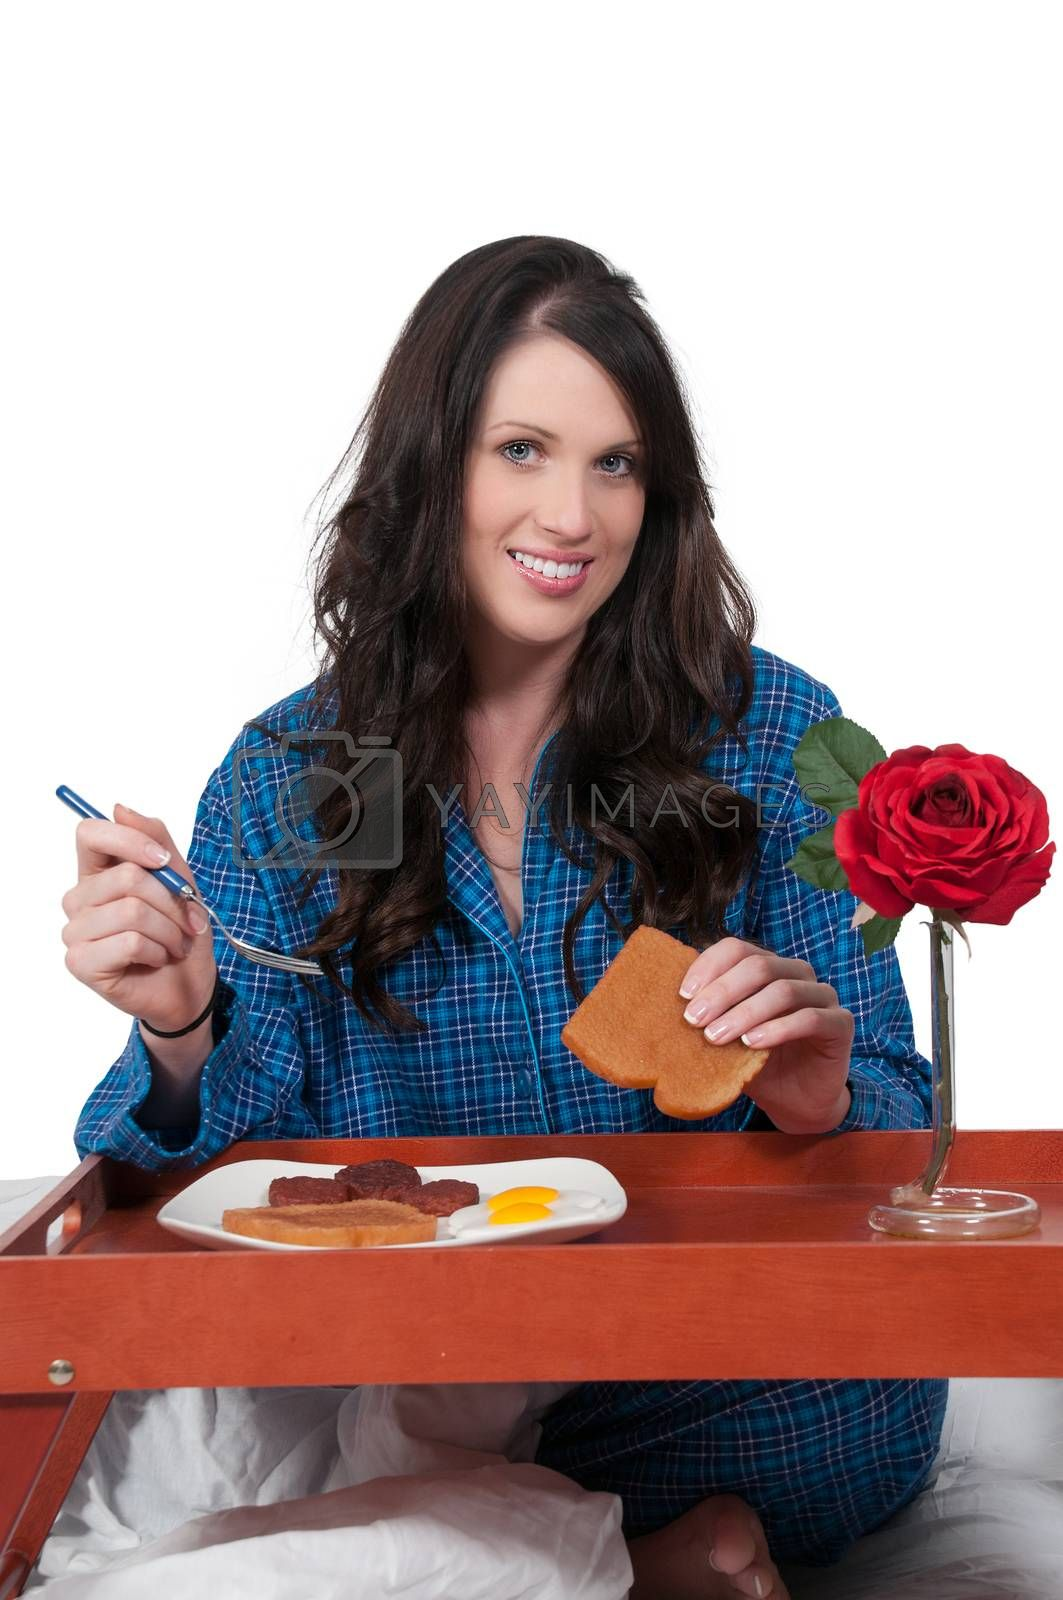 Beautiful woman eating a big breakfast in bed